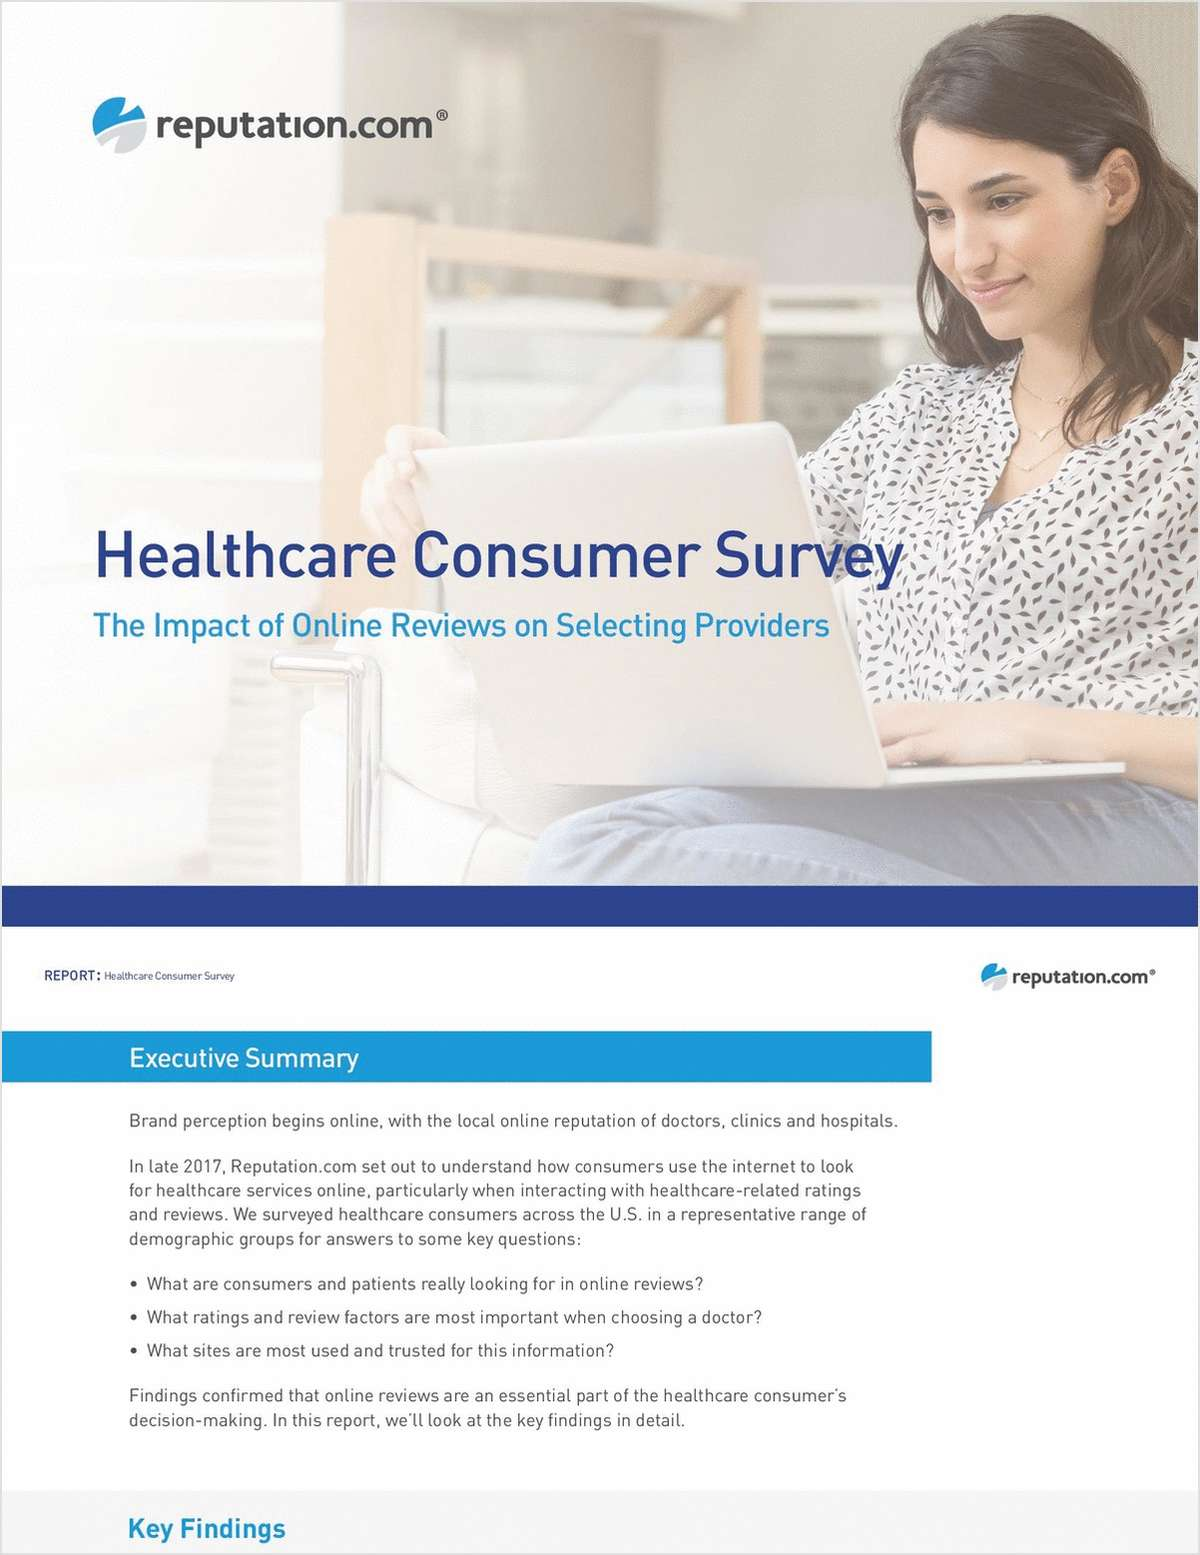 Healthcare Consumer Survey: The Impact of Online Reviews on Selecting Providers